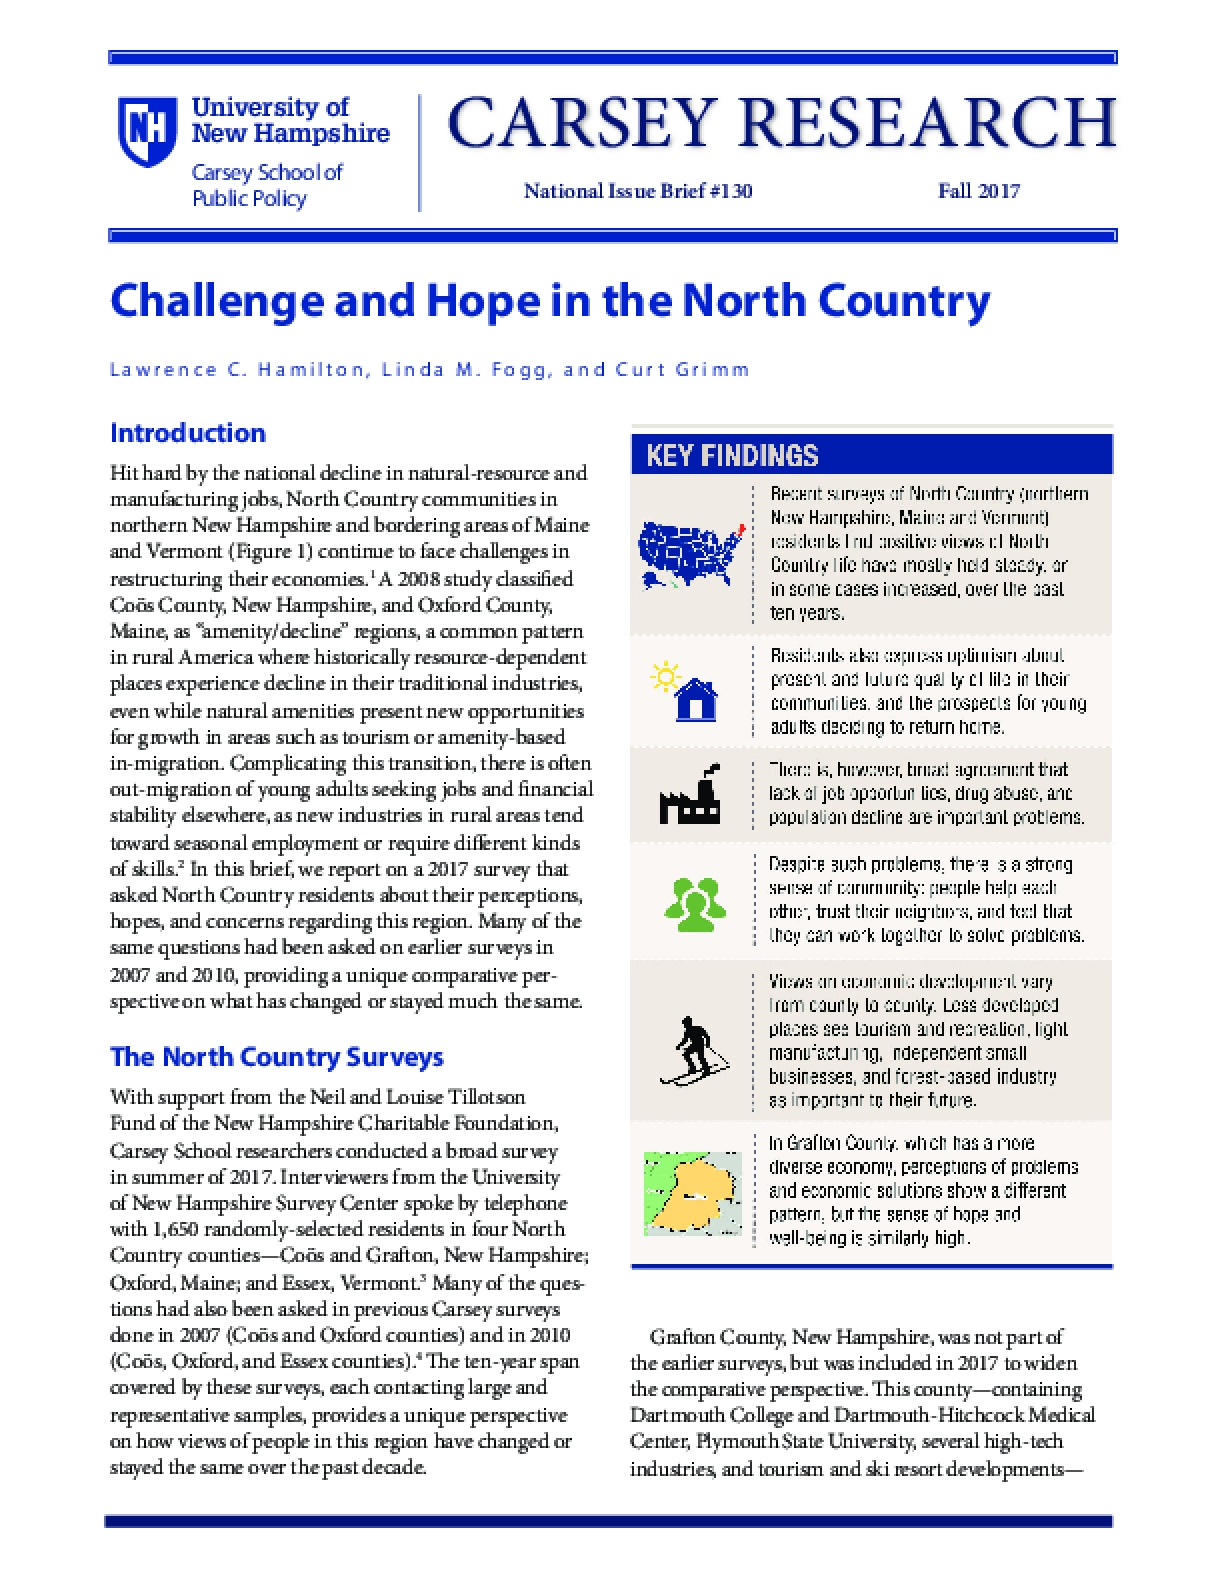 Challenge and Hope in the North Country